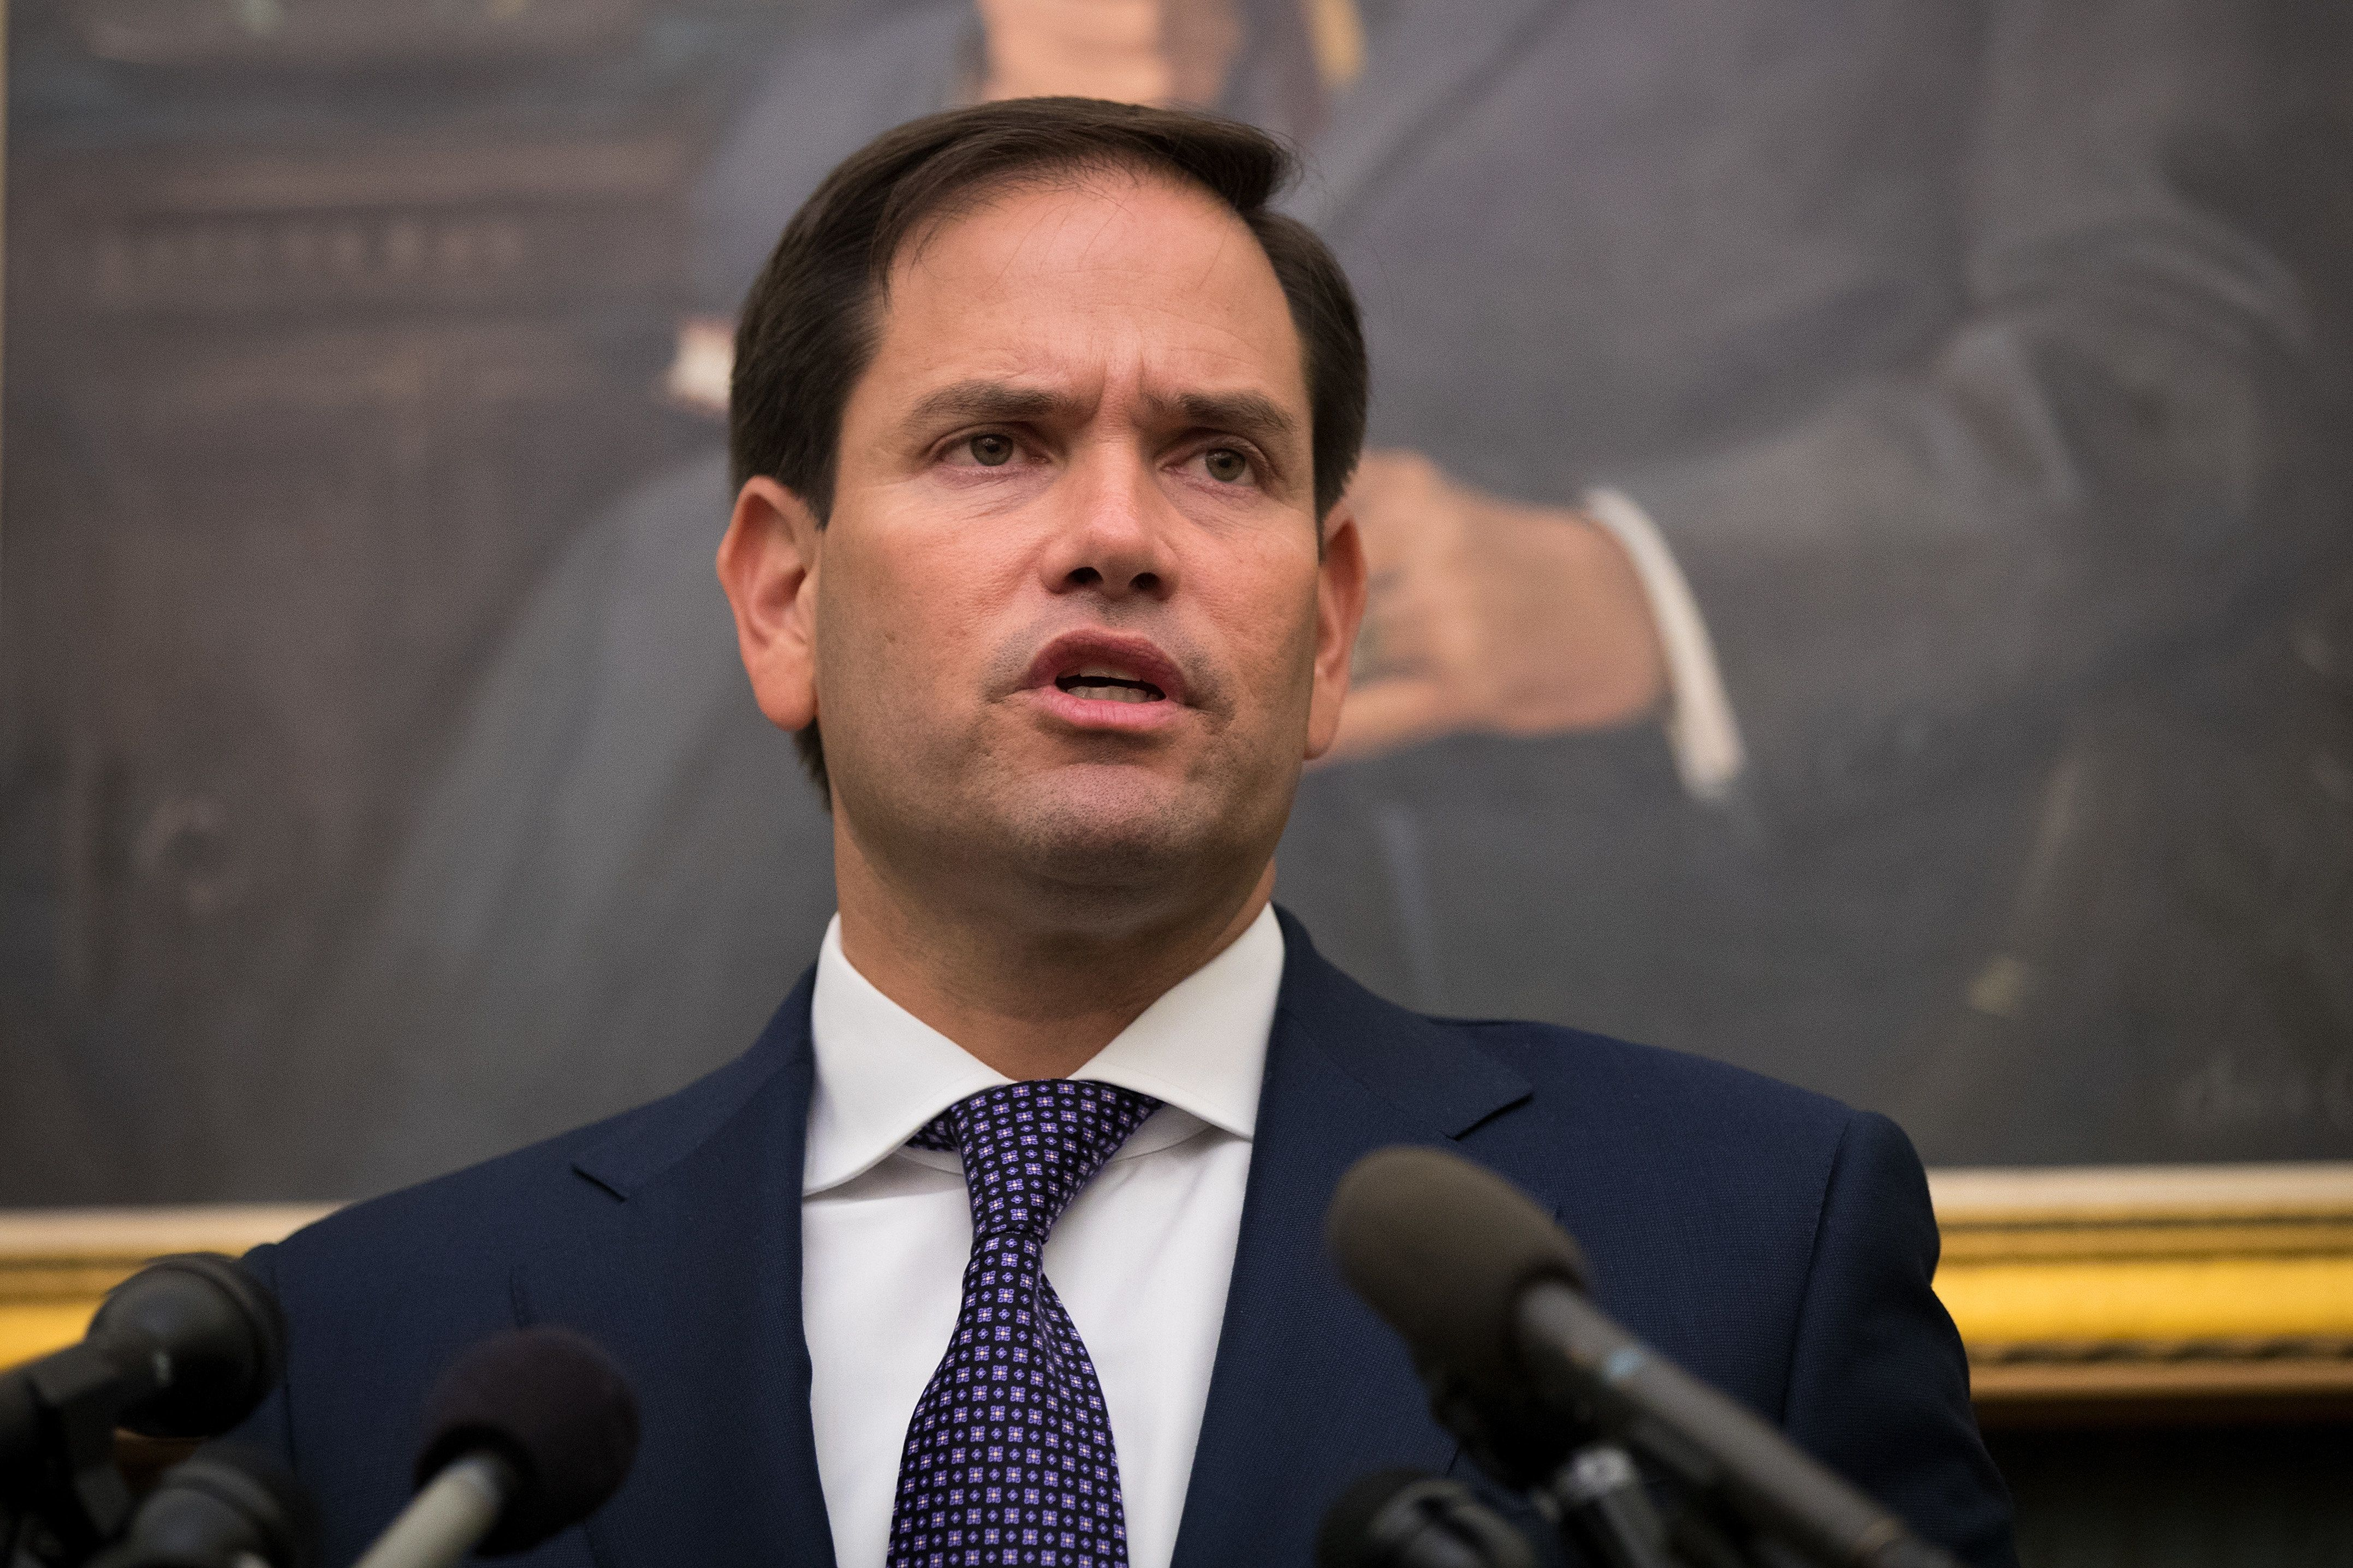 WASHINGTON, DC - SEPTEMBER 26: Sen. Marco Rubio (R-FL) takes questions from reporters about the relief effort in Puerto Rico following Hurricane Maria, September 26, 2017 at the U.S. Capitol in Washington, DC. Over 3 million people are still without power on the island following the damage from Hurricane Maria. (Photo by Drew Angerer/Getty Images)